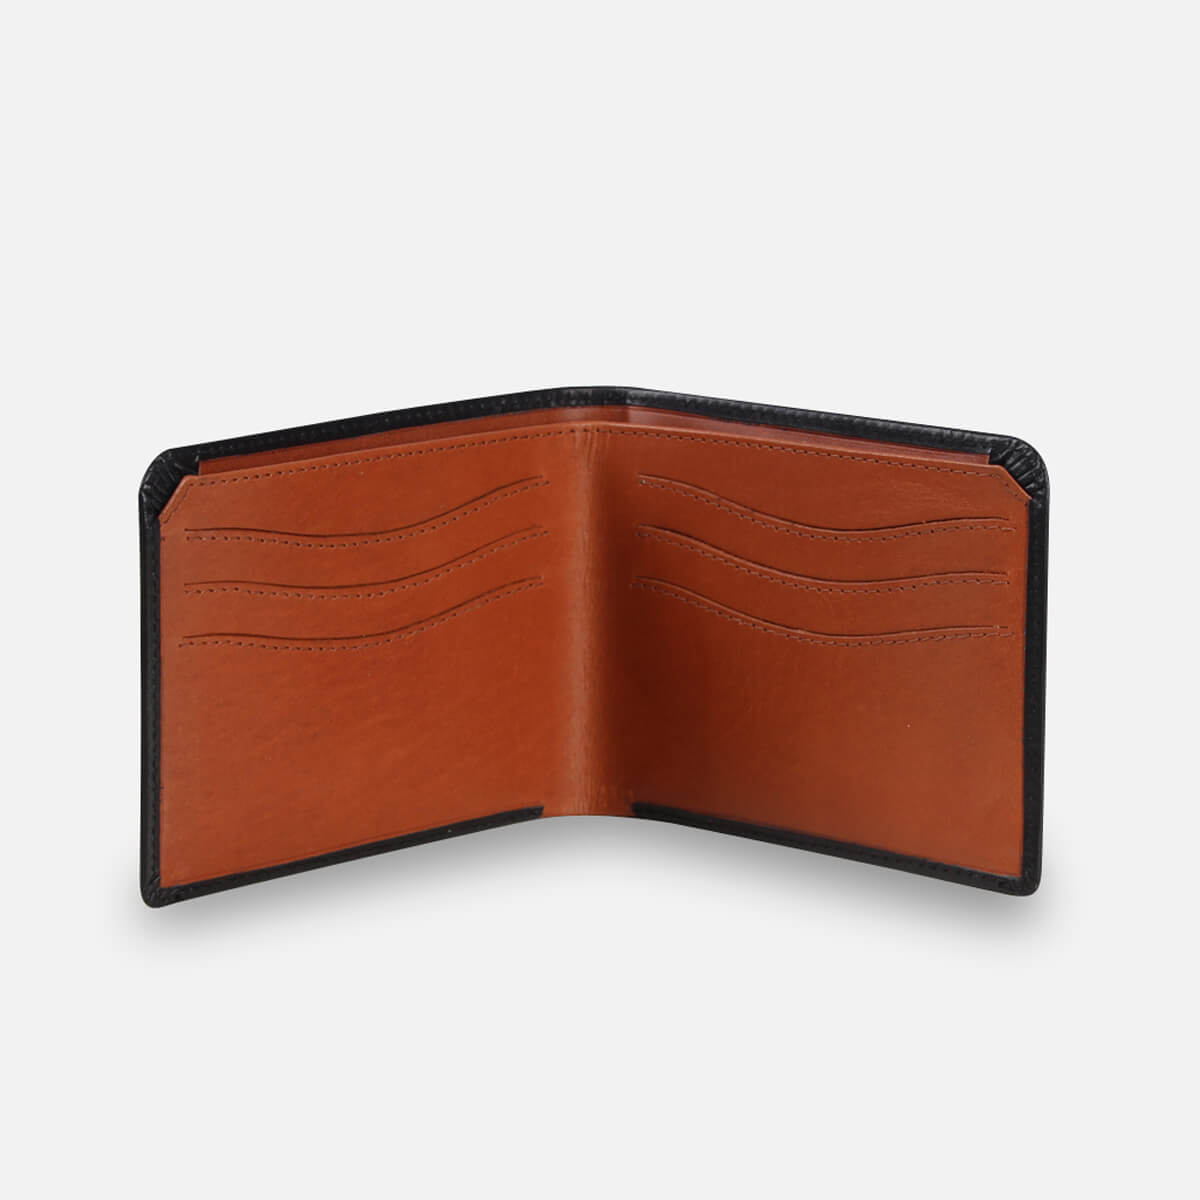 Zoomlite leather Slim wallets with RFID protection - inside view